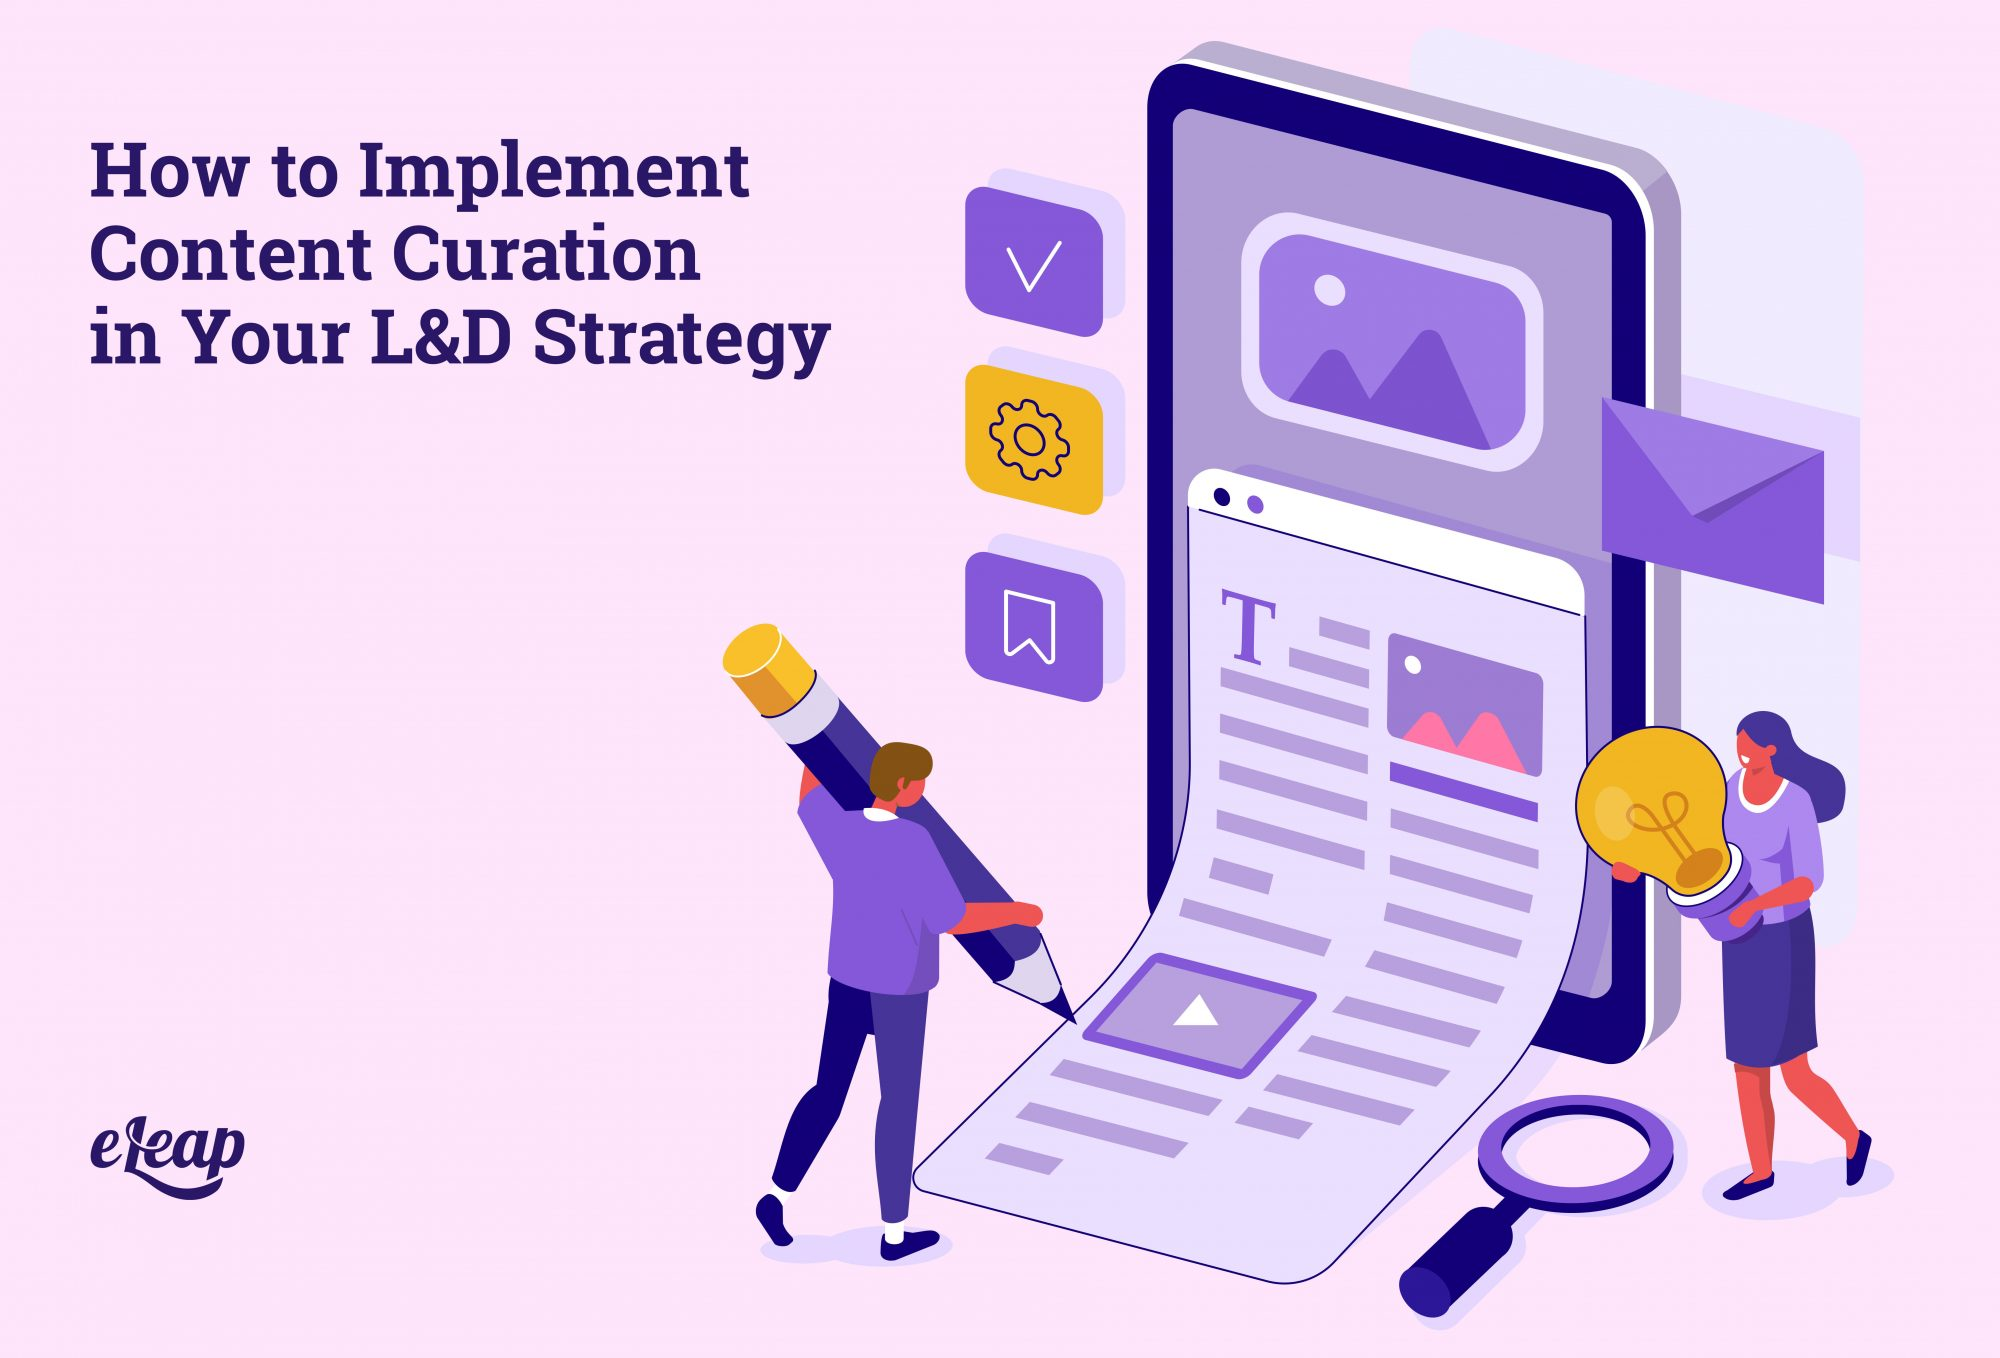 How to Implement Content Curation in Your L&D Strategy